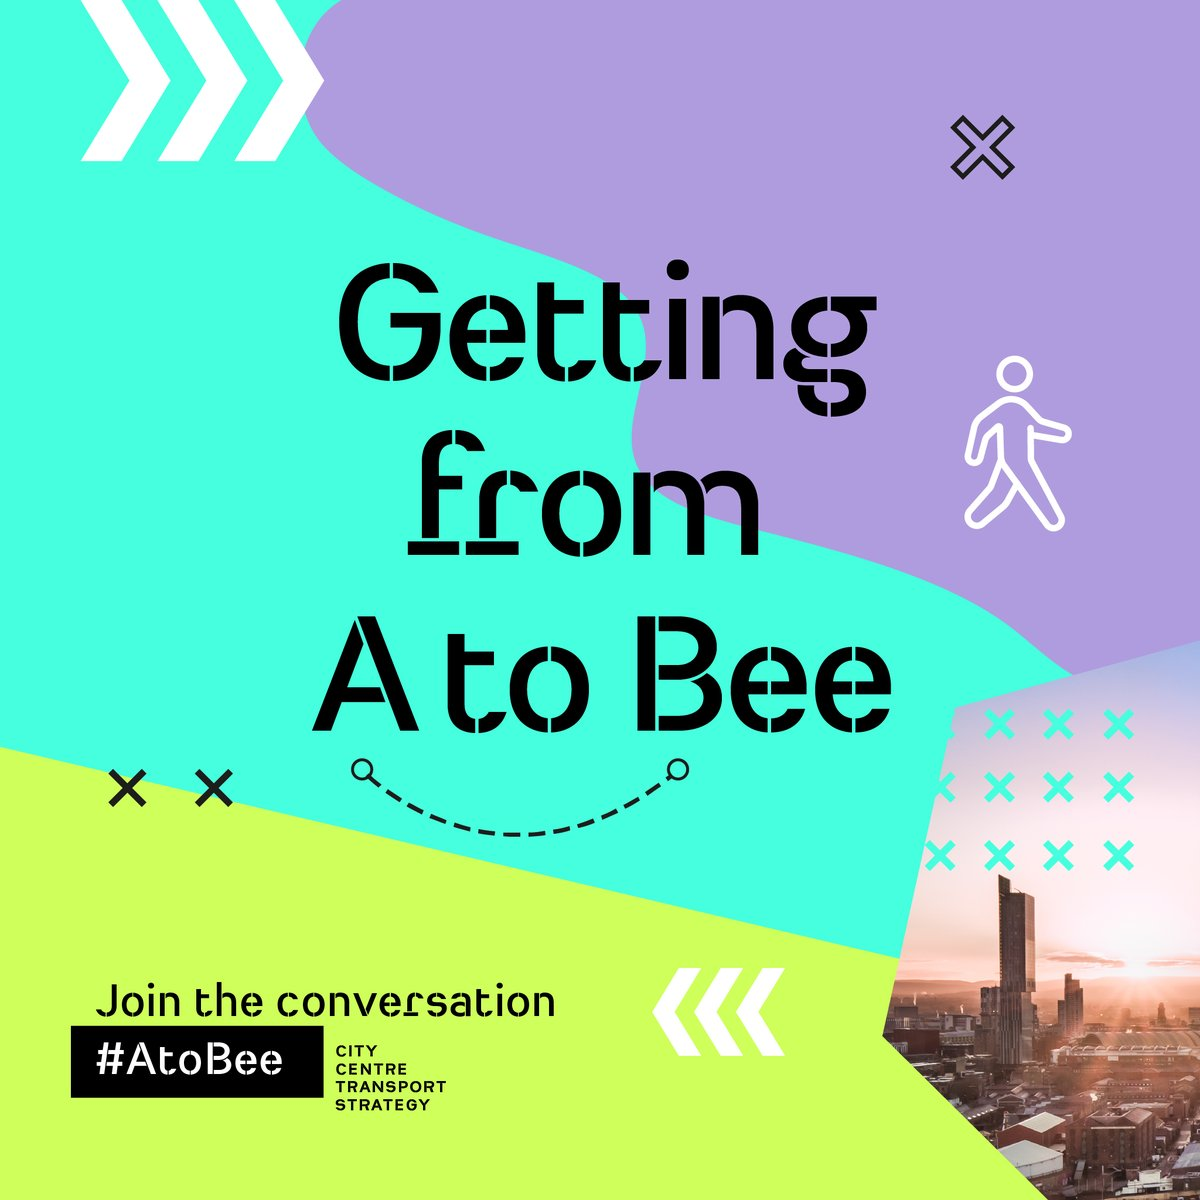 🏙️ The Manchester city centre transport strategy consultation is now open, and we want to know what your ambitions are for the future of travel around our city centre? 🧾 Read about the plans, and join the conversation at manchester.gov.uk/consultations It's as easy as #AtoBee 🐝